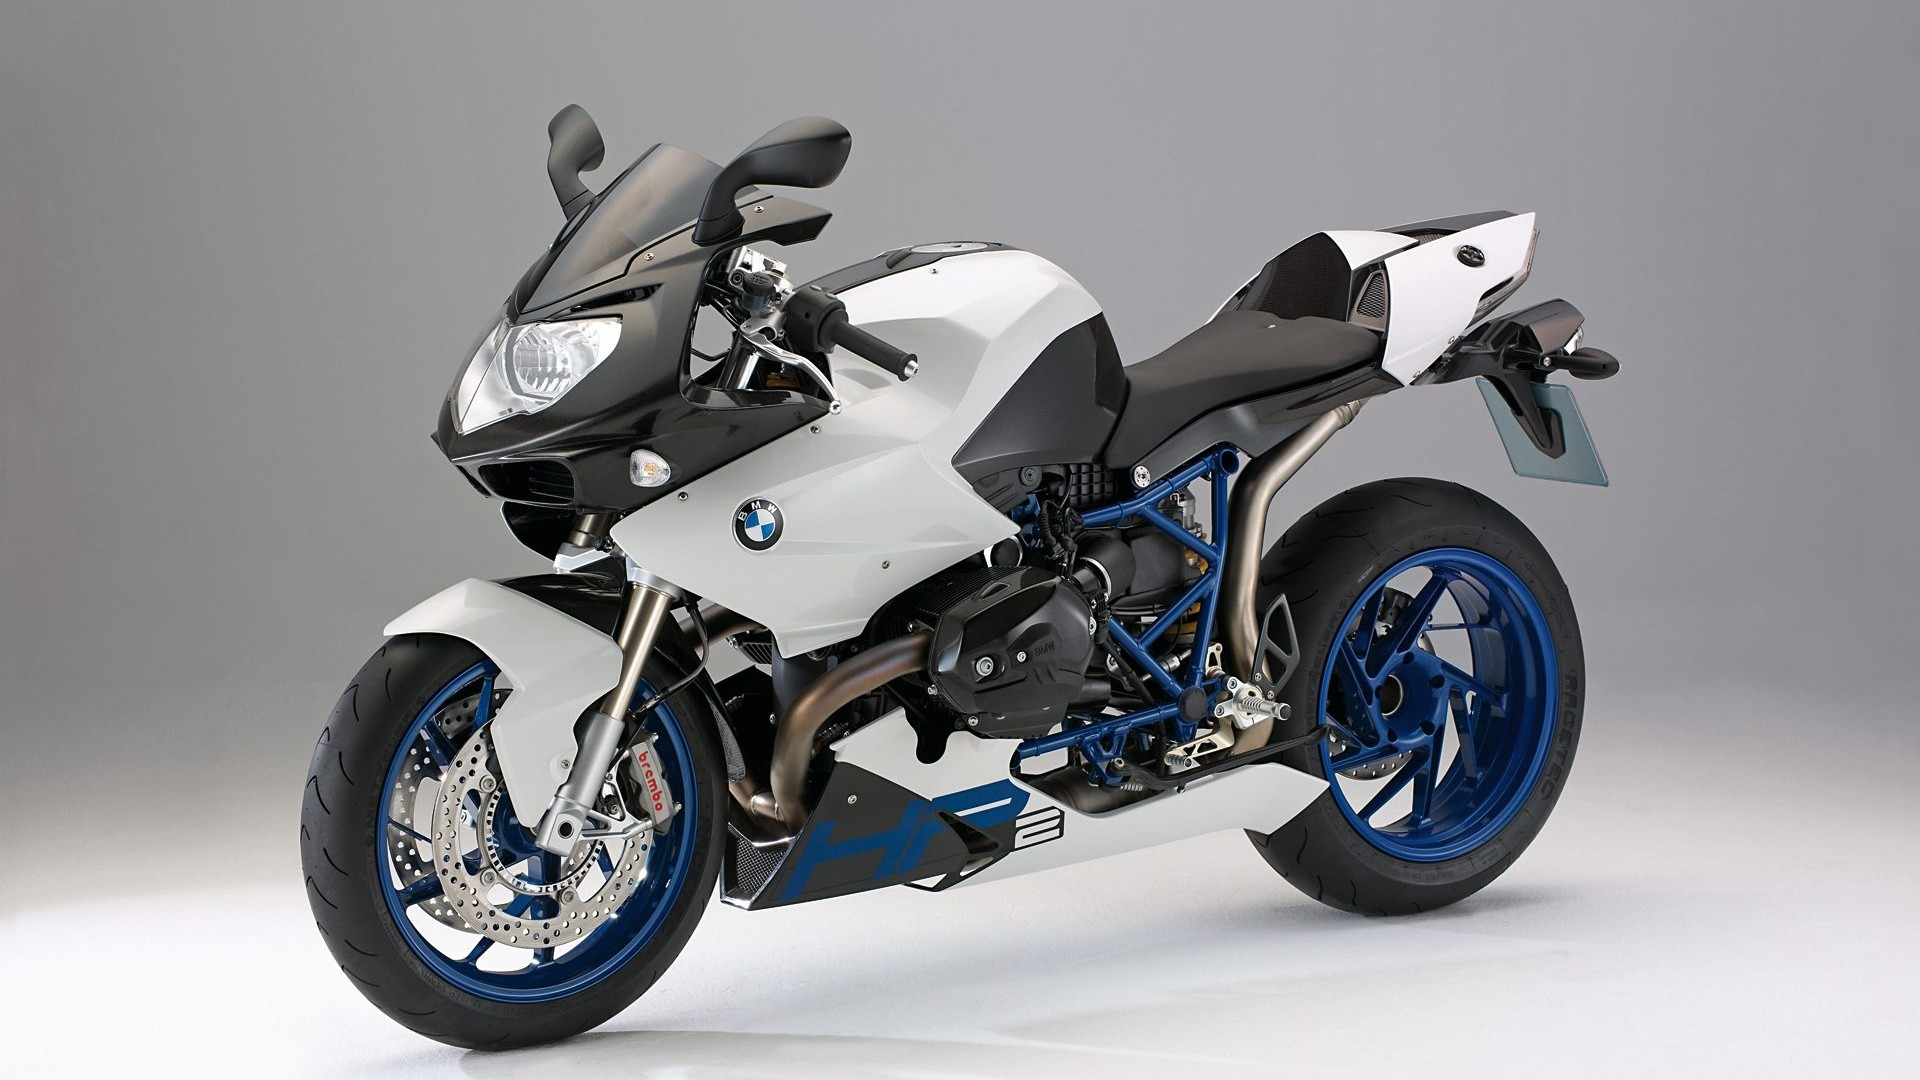 1920x1080 BMW Bikes HD Wallpapers Free Download. bmw superbike pictures